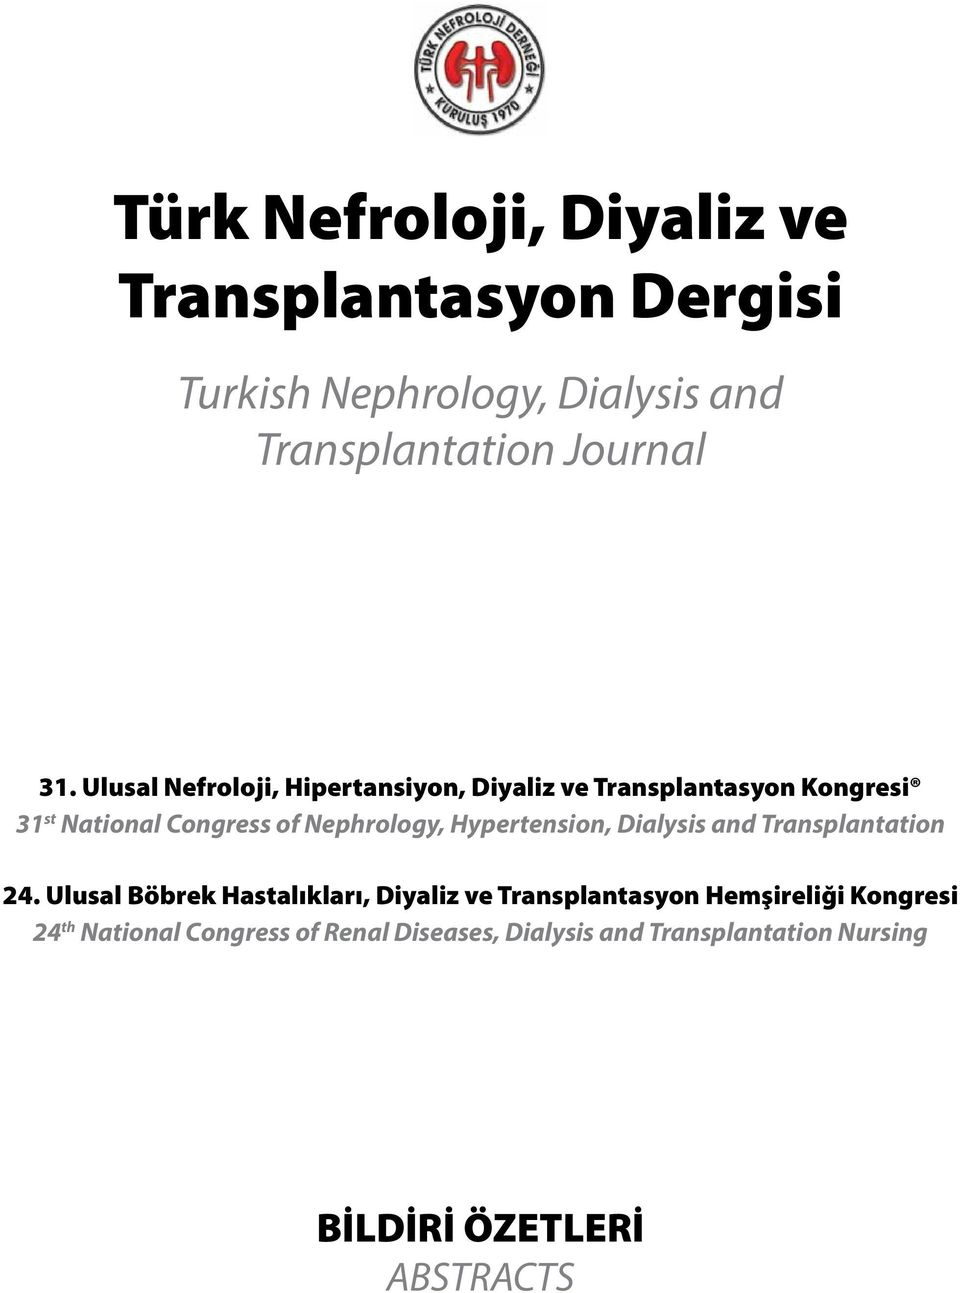 Hypertension, Dialysis and Transplantation 4.